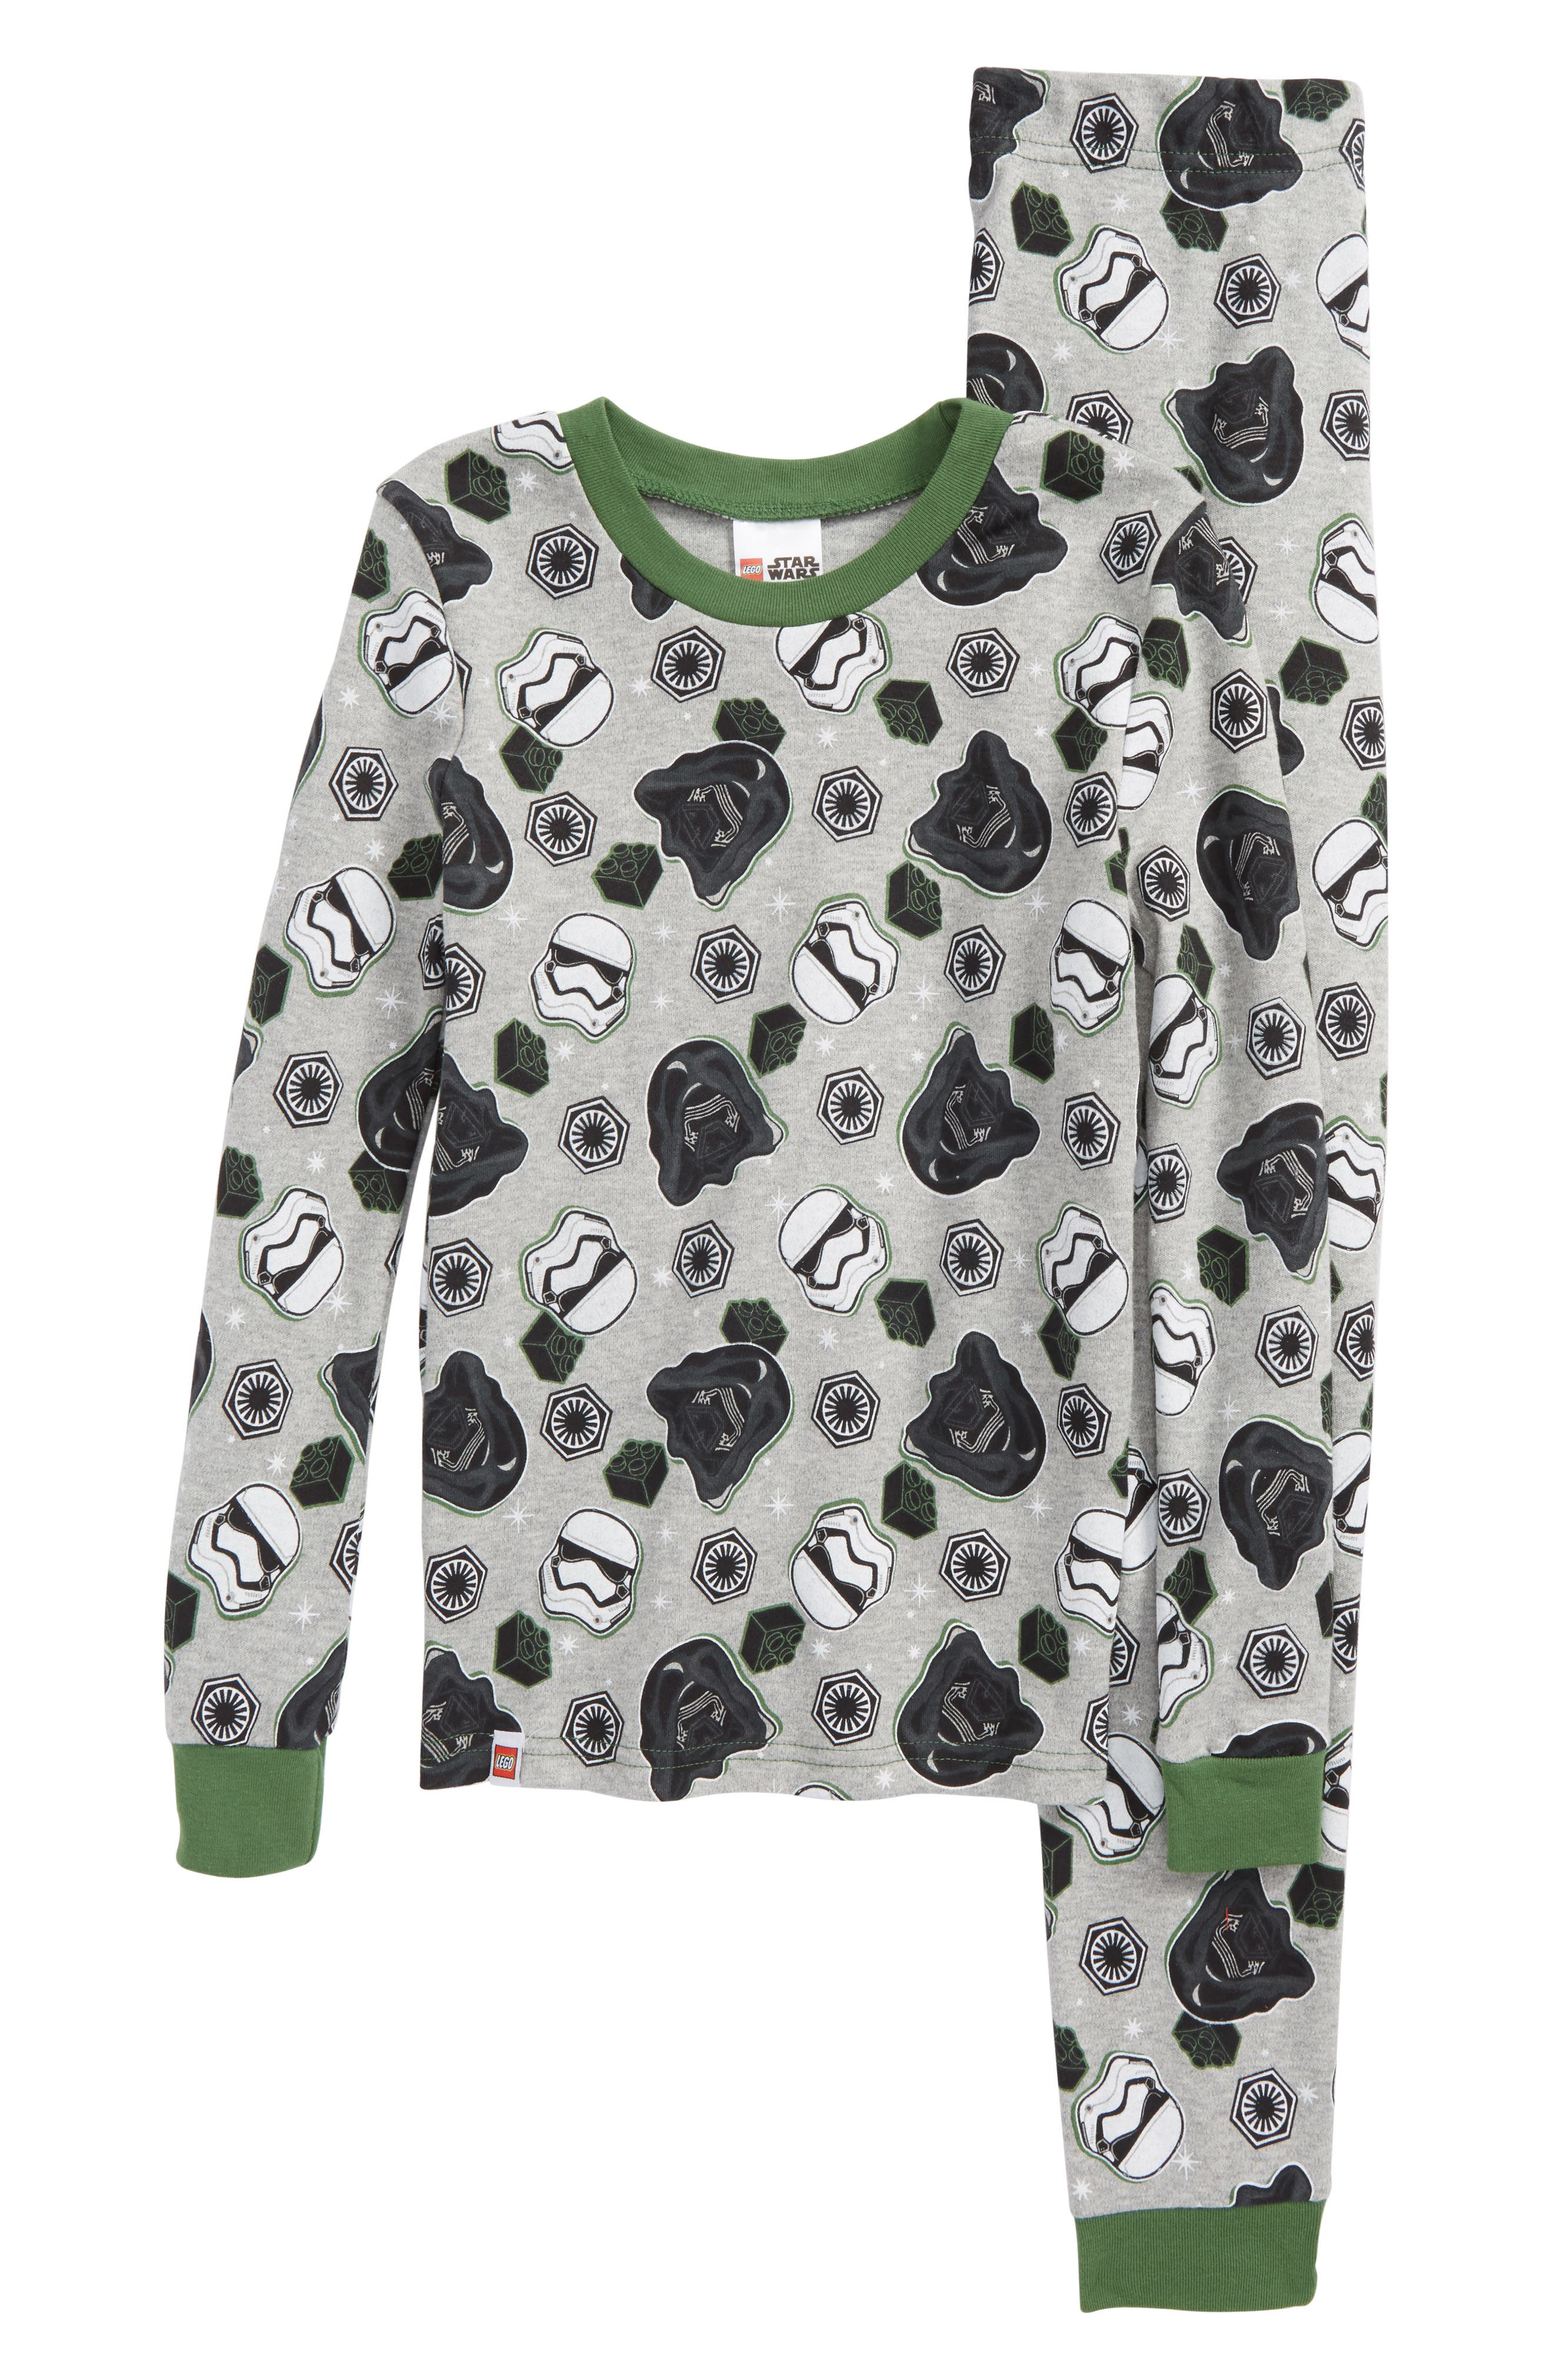 Alternate Image 1 Selected - Lego Star Wars™ Fitted Two-Piece Pajamas Set (Little Boys & Big Boys)